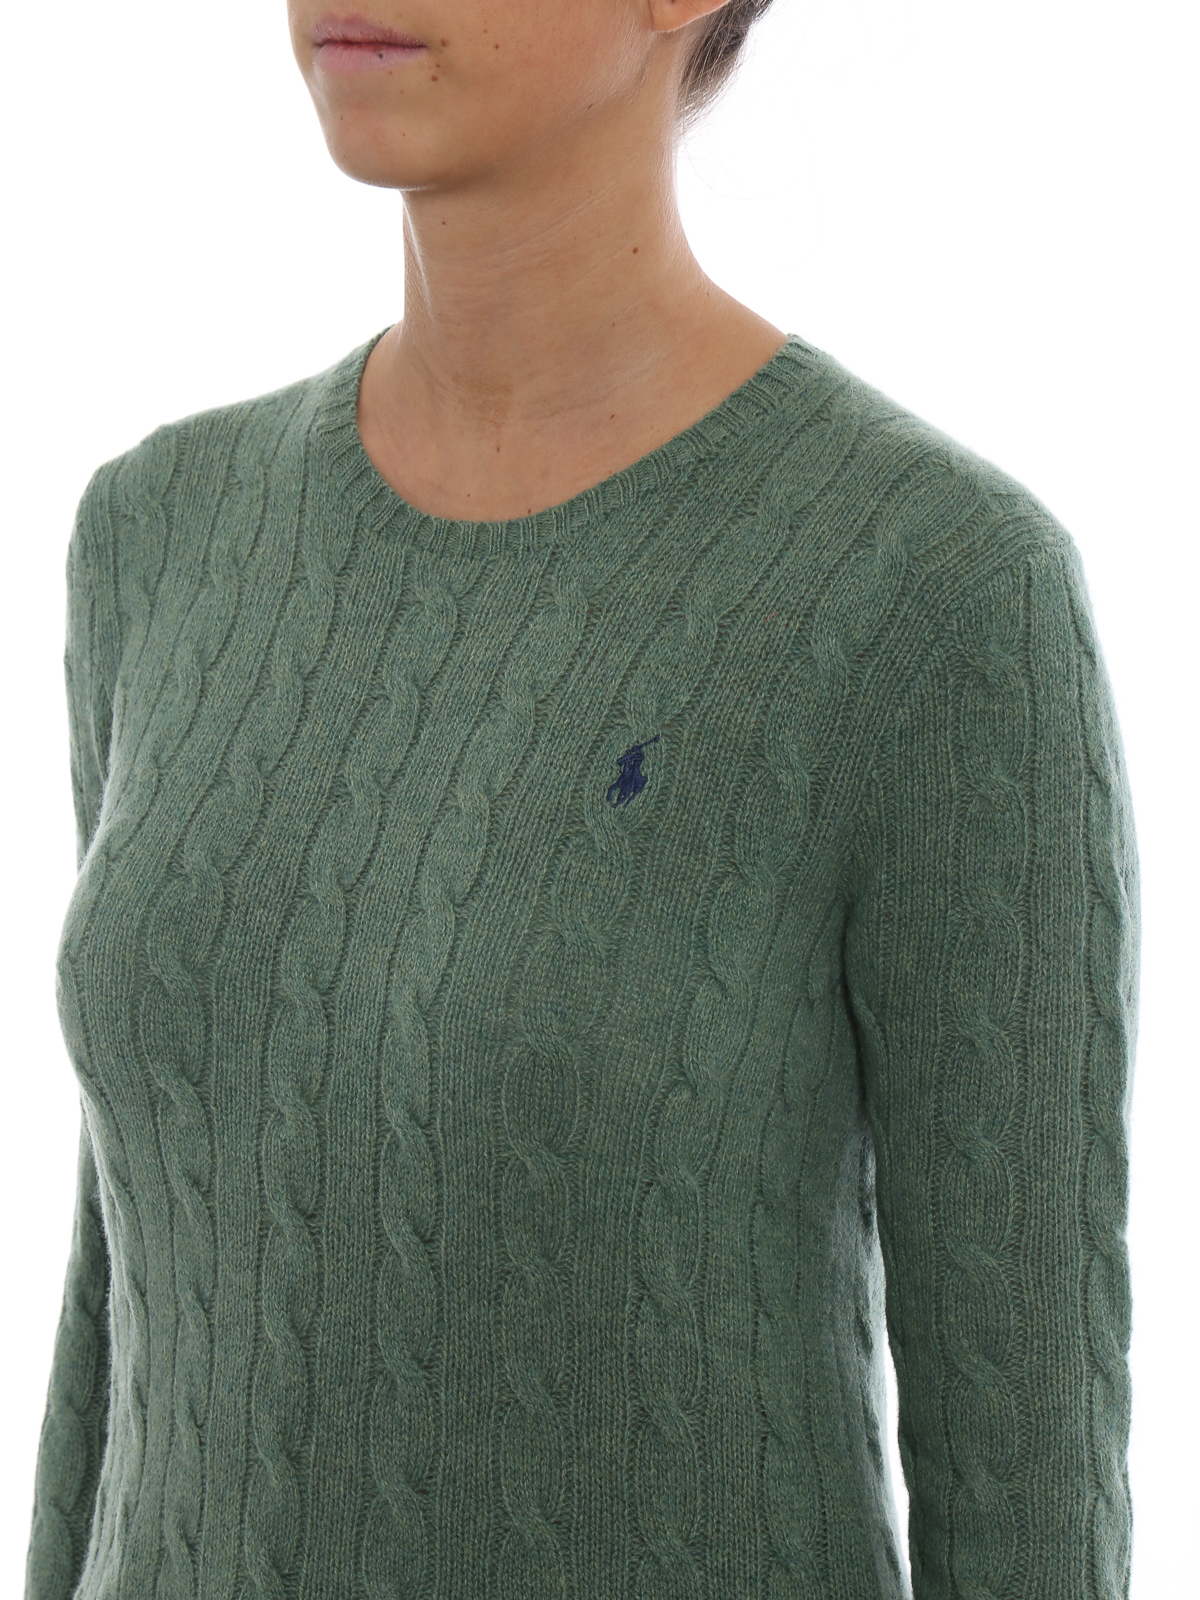 62034a0f4 POLO RALPH LAUREN buy online Green cable knit merino and cashmere sweater. POLO  RALPH LAUREN  crew necks ...